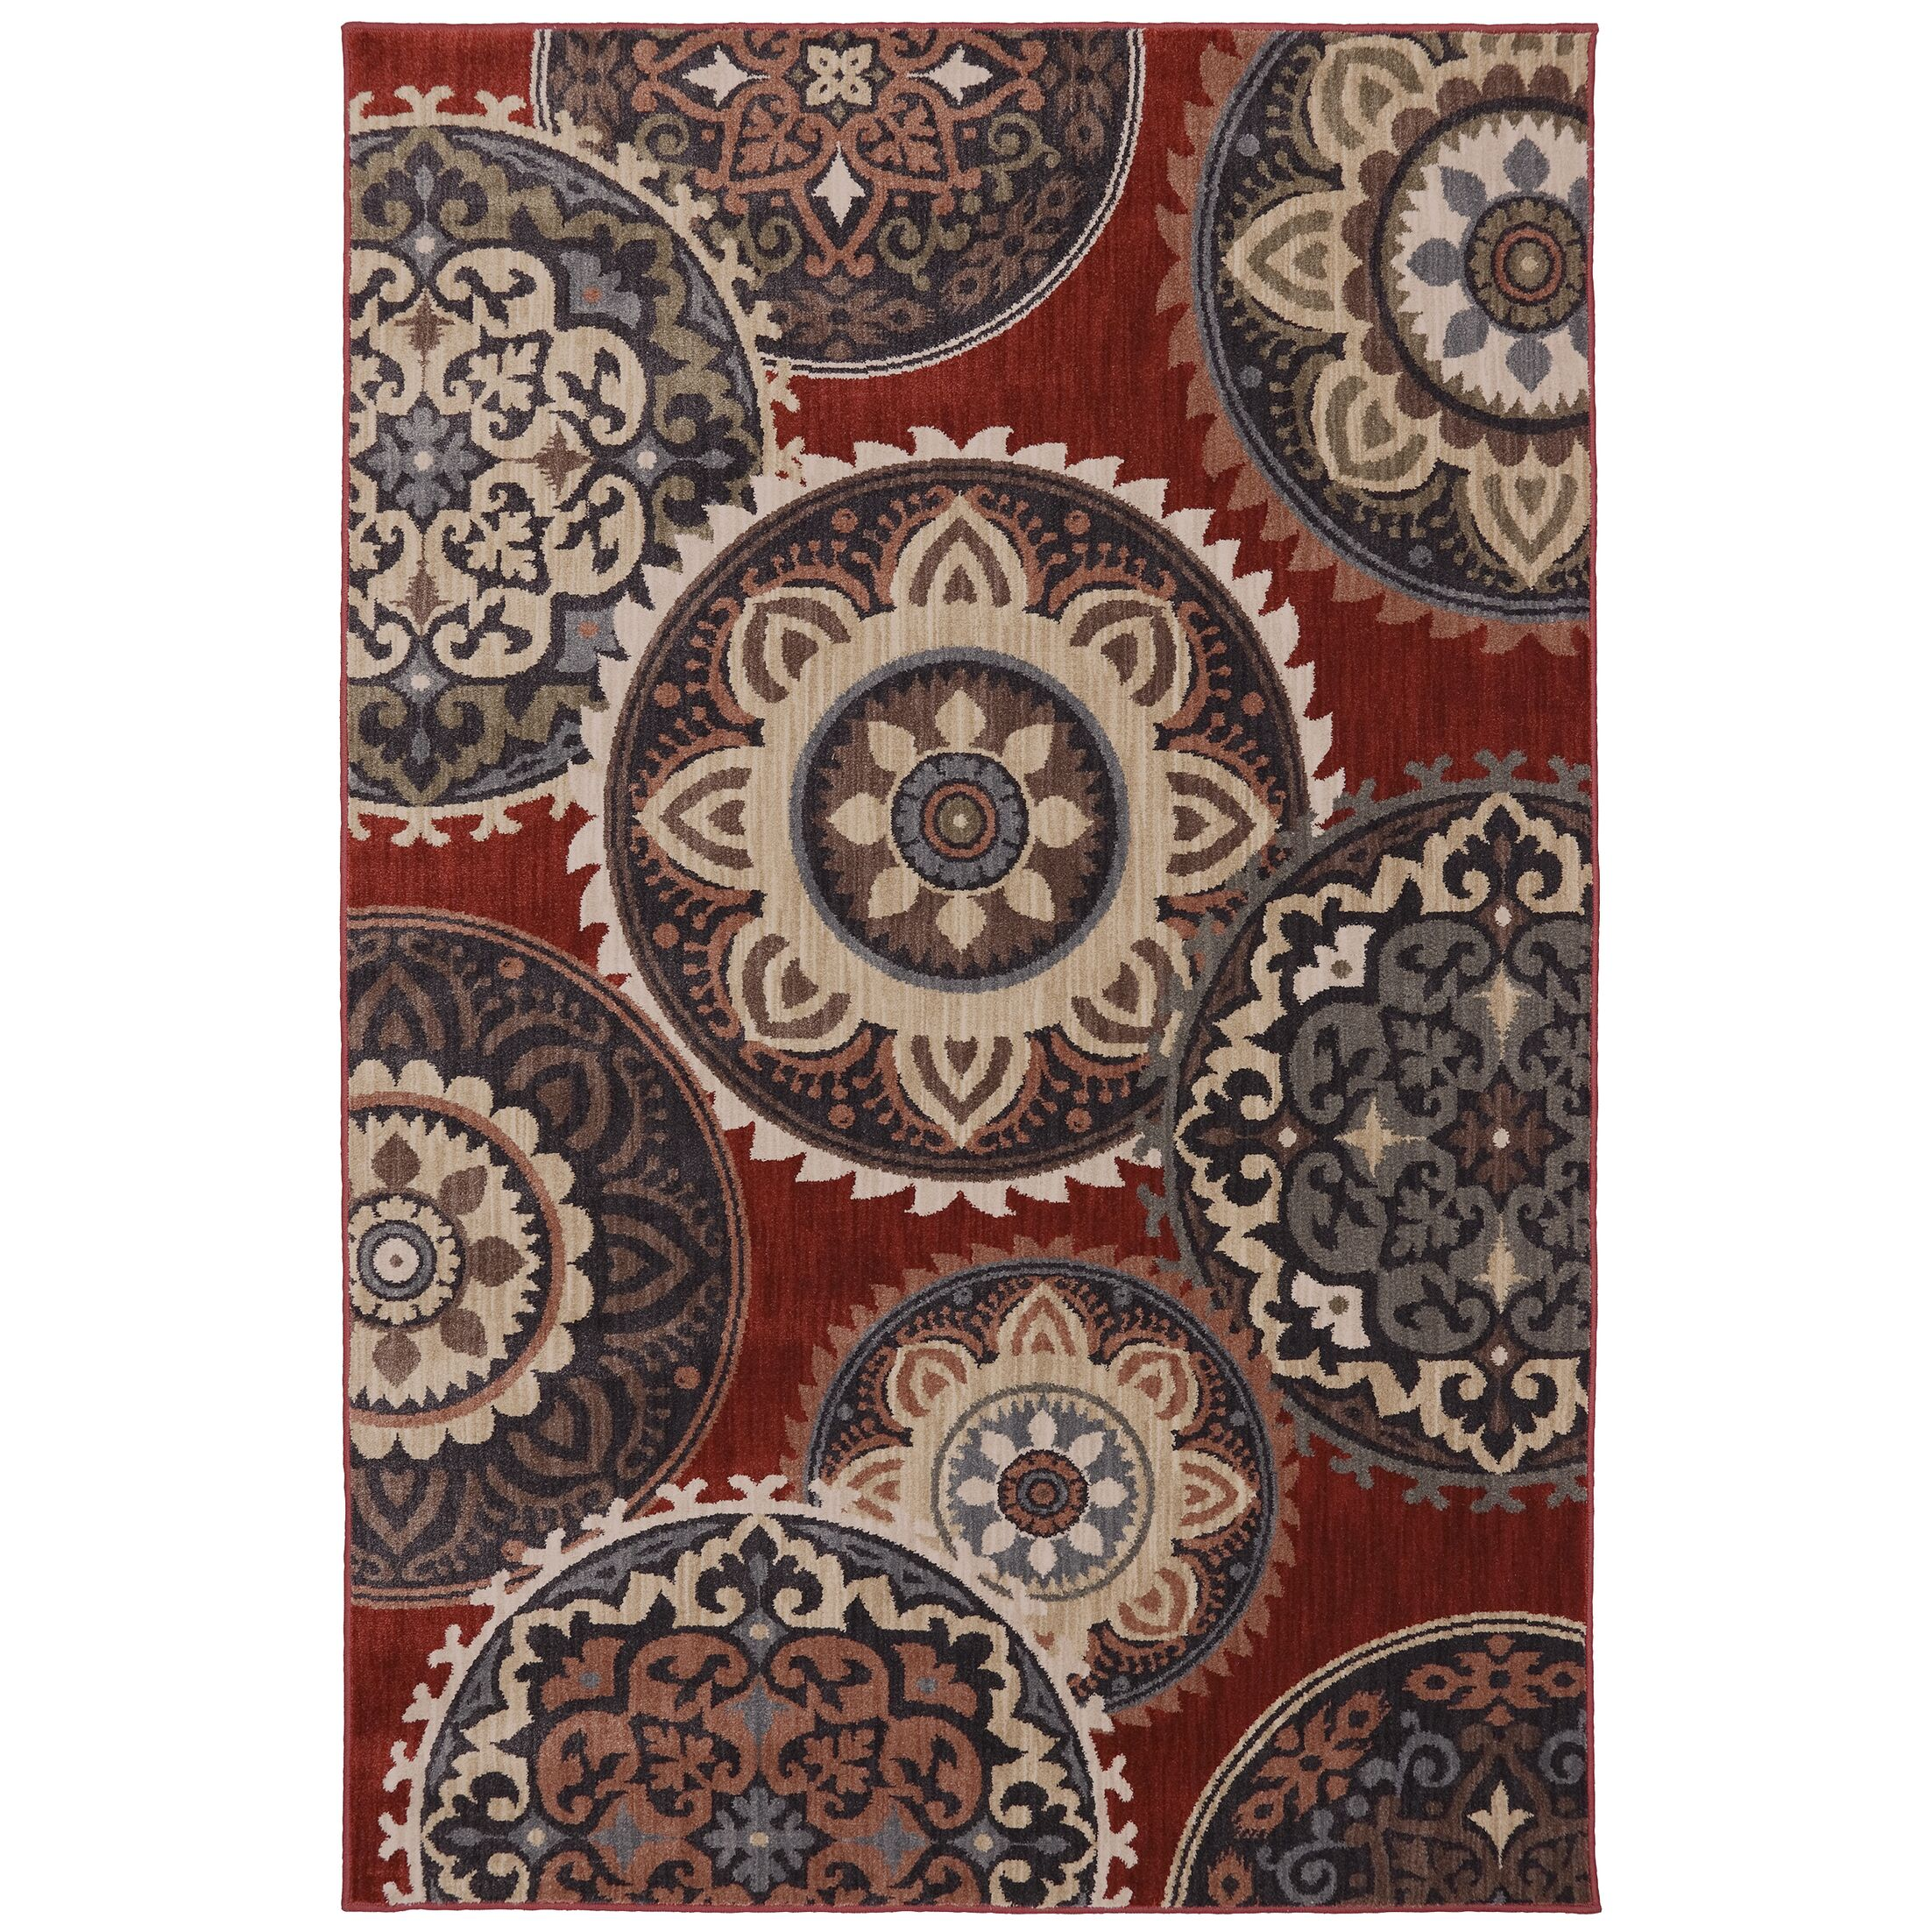 Dryden Summit View Ashen Ornamental Rug Rug Size: Rectangle 3'6